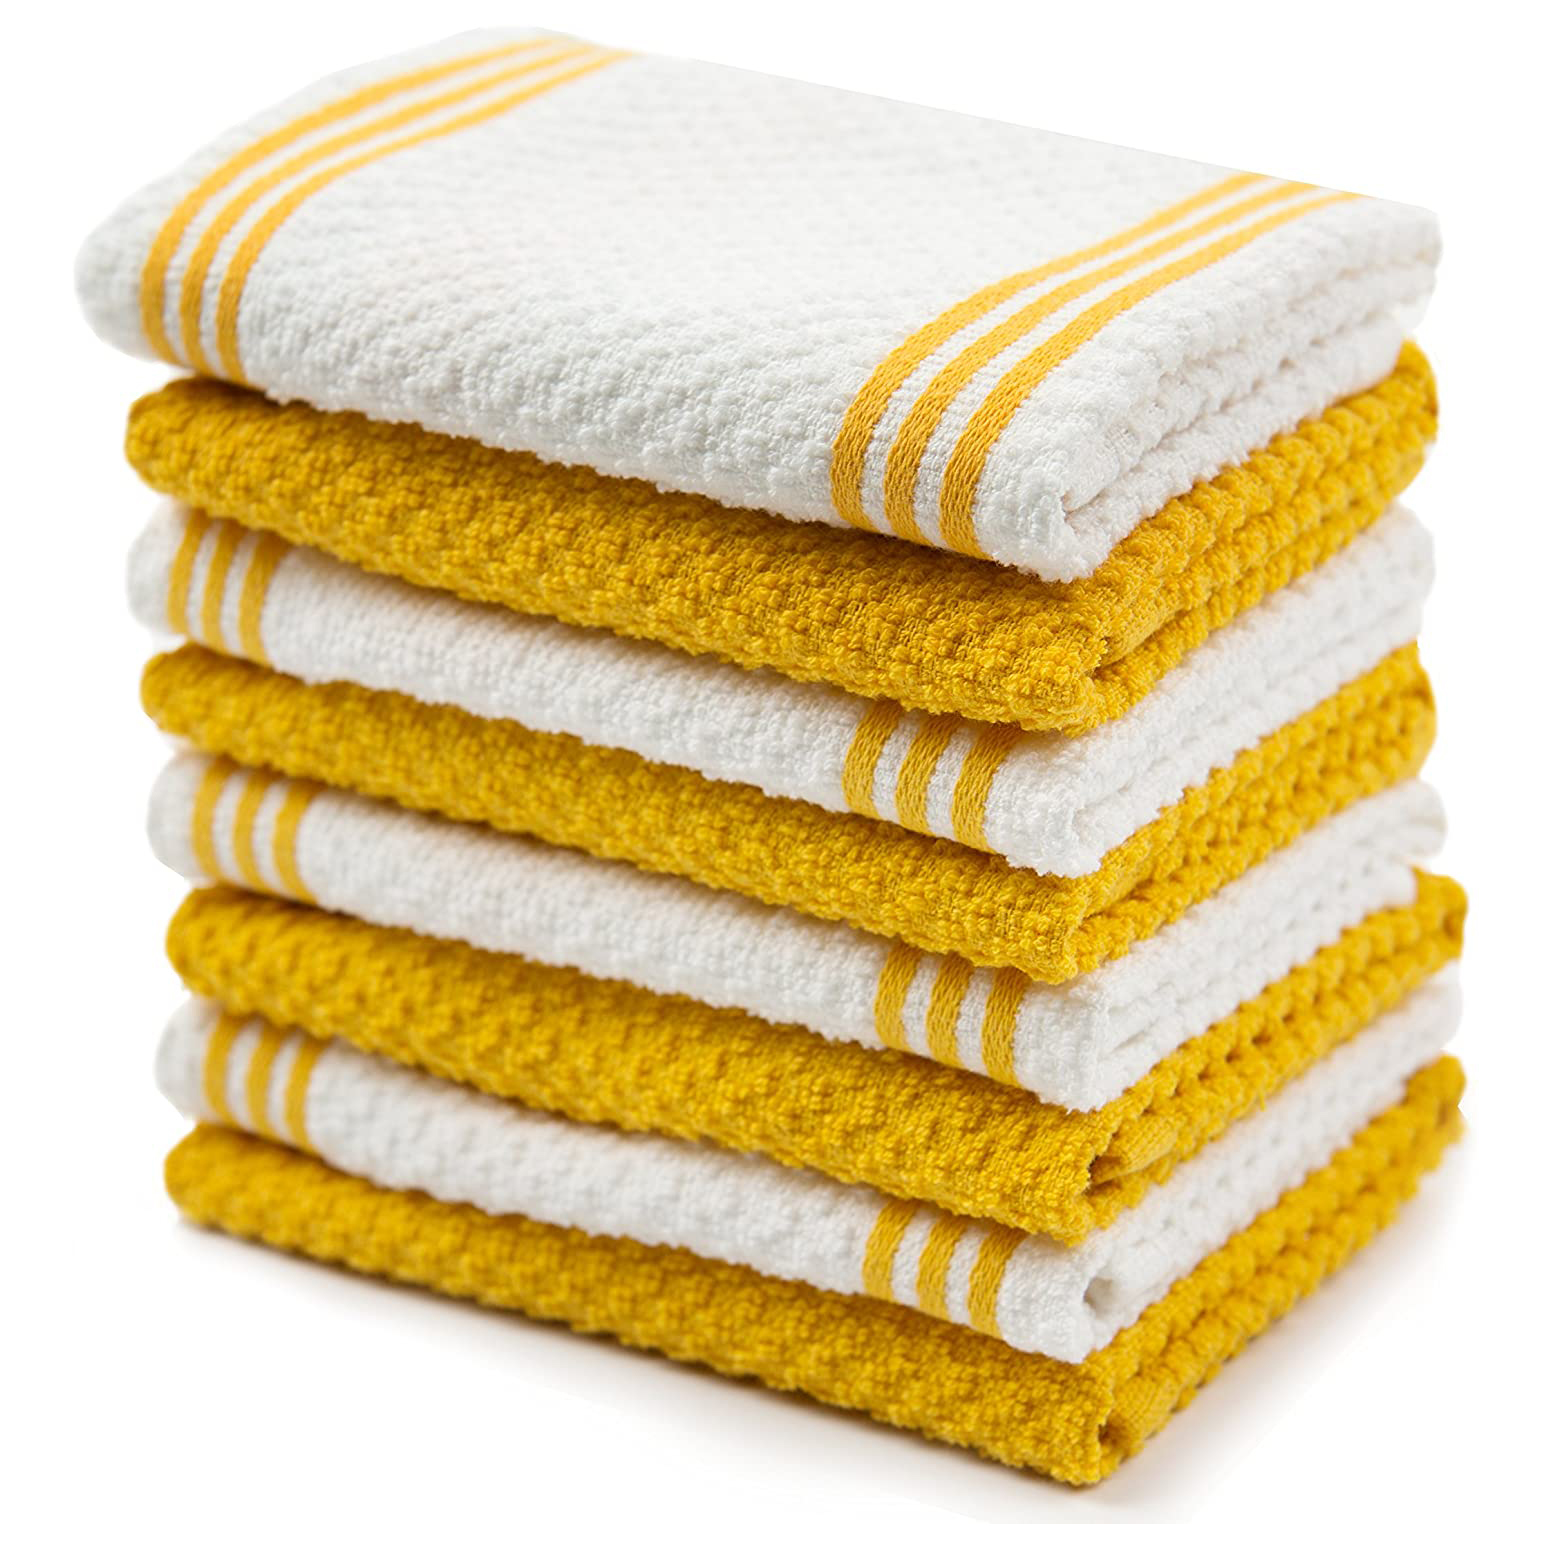 Sticky Toffee Cotton Terry Kitchen Dishcloth Towels, 8 Pack, 12 in x 12 in, Yellow Stripe